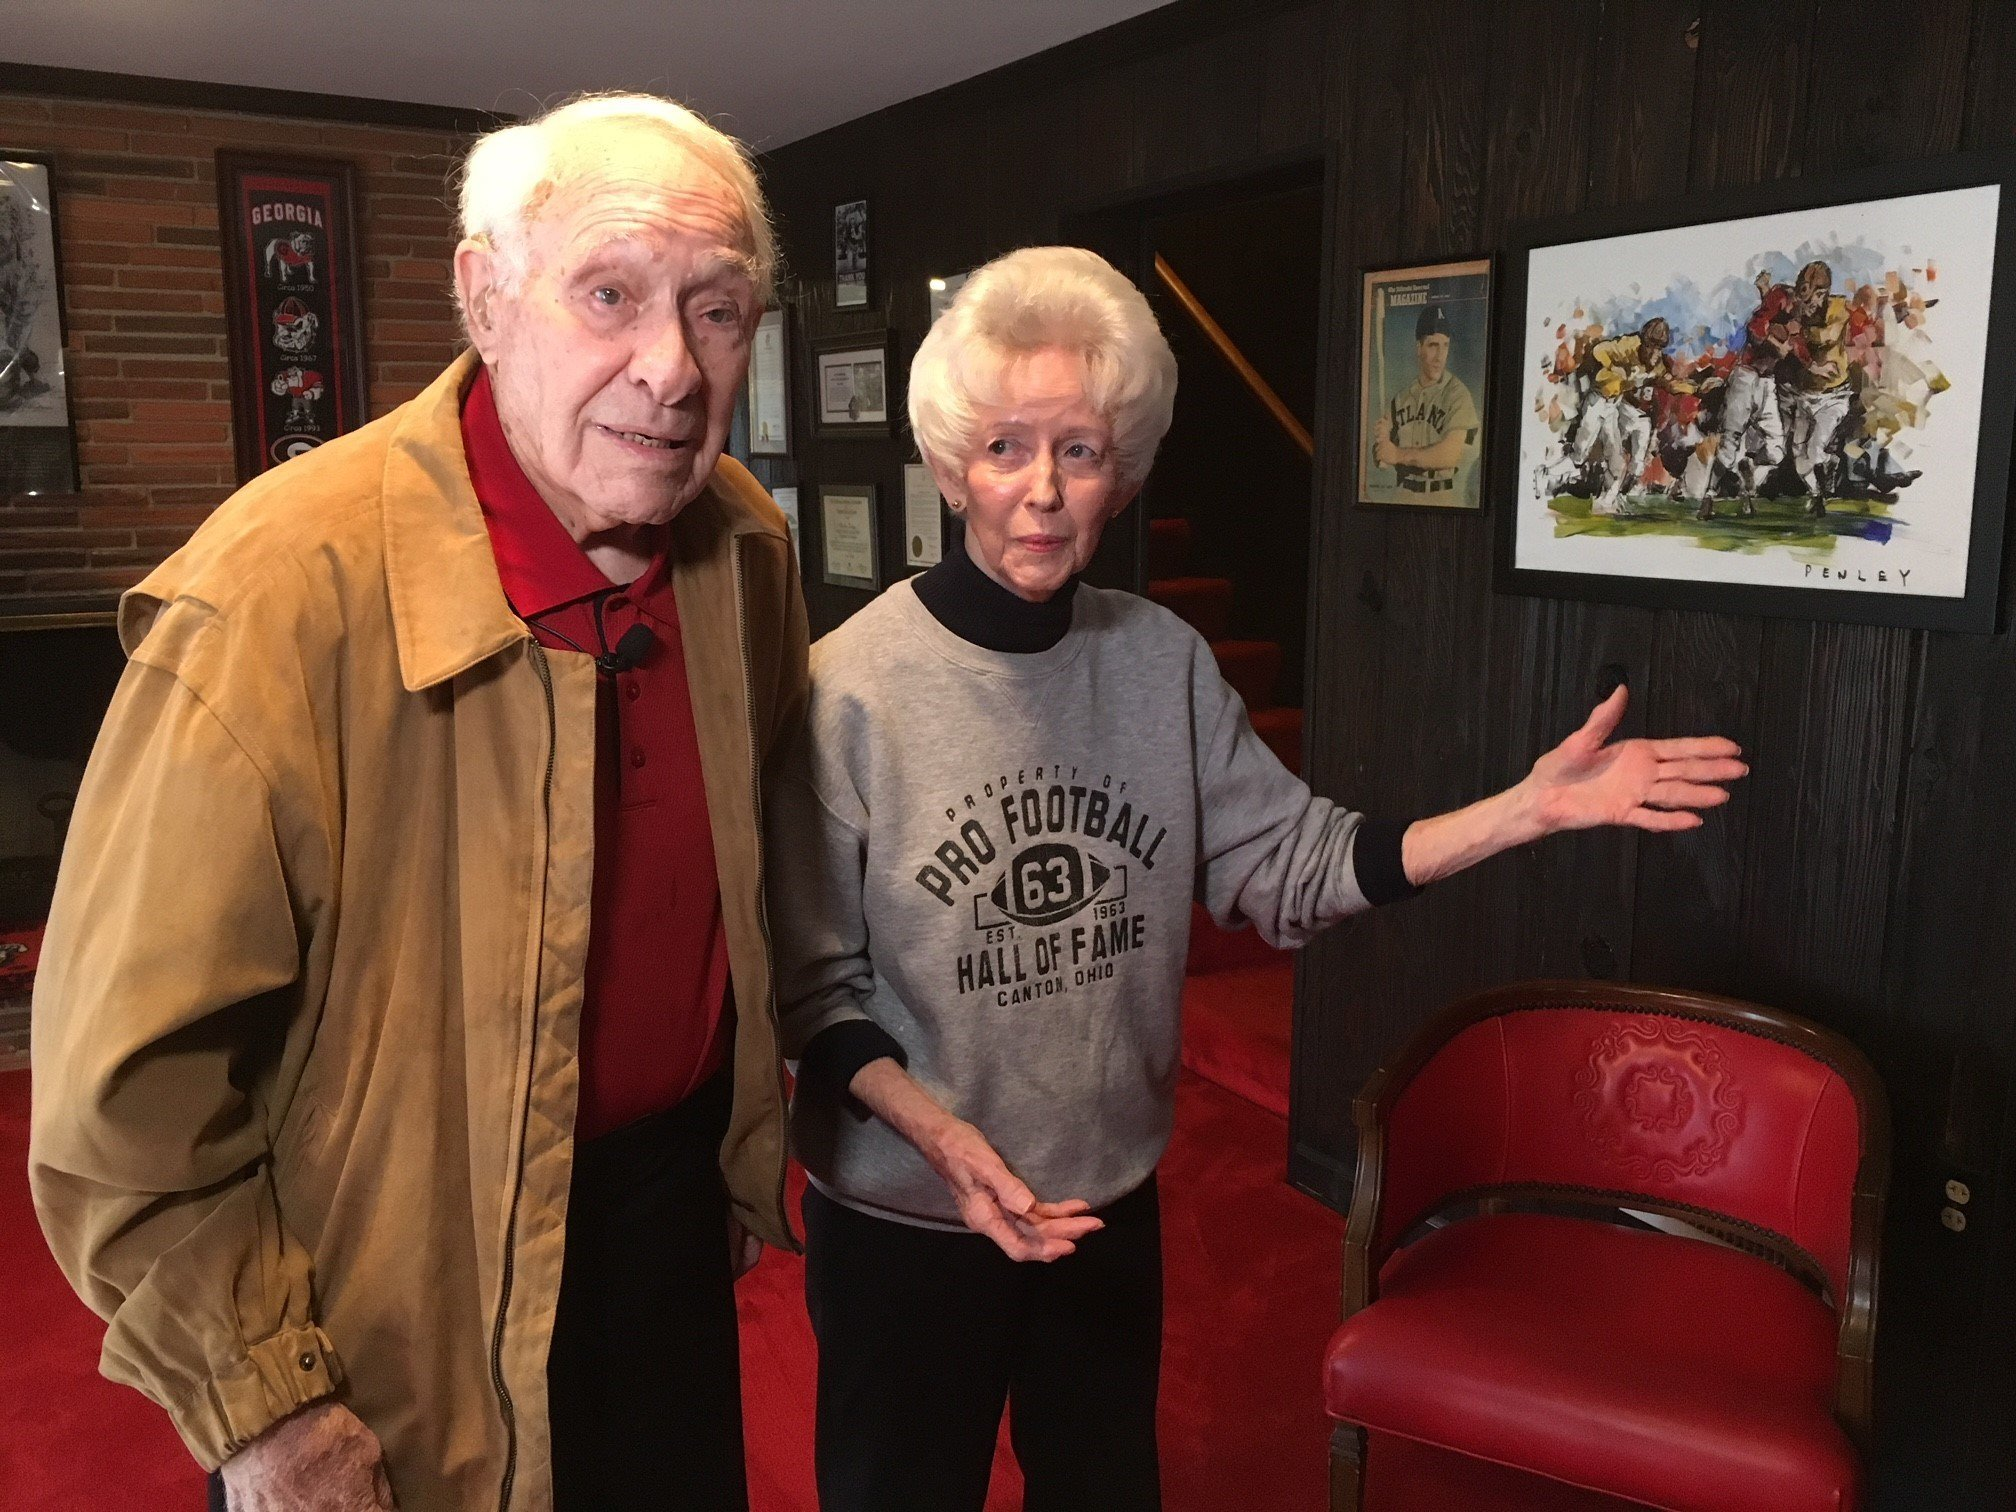 Charley Trippi with his wife Peggy. (Source: WGCL)